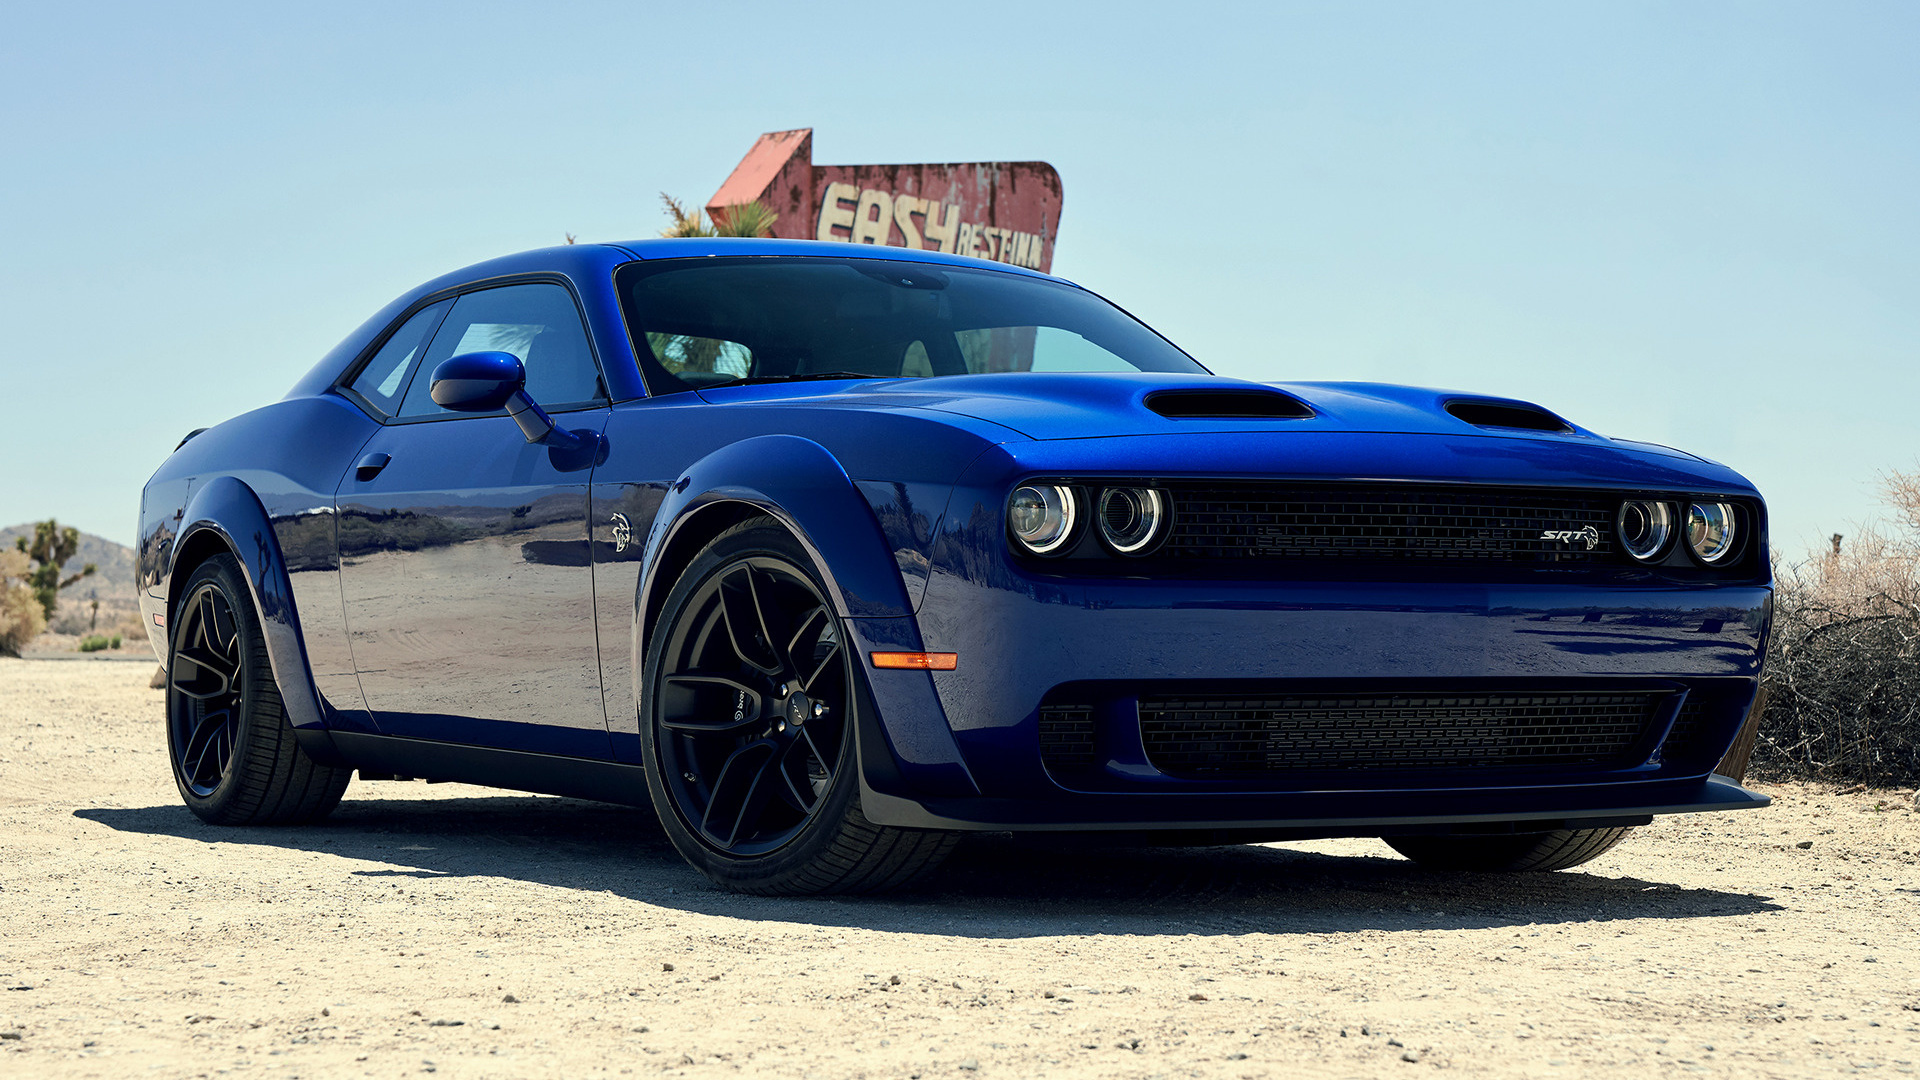 Dodge Challenger SRT Hellcat Widebody (2019) Wallpapers and HD Images - Car Pixel